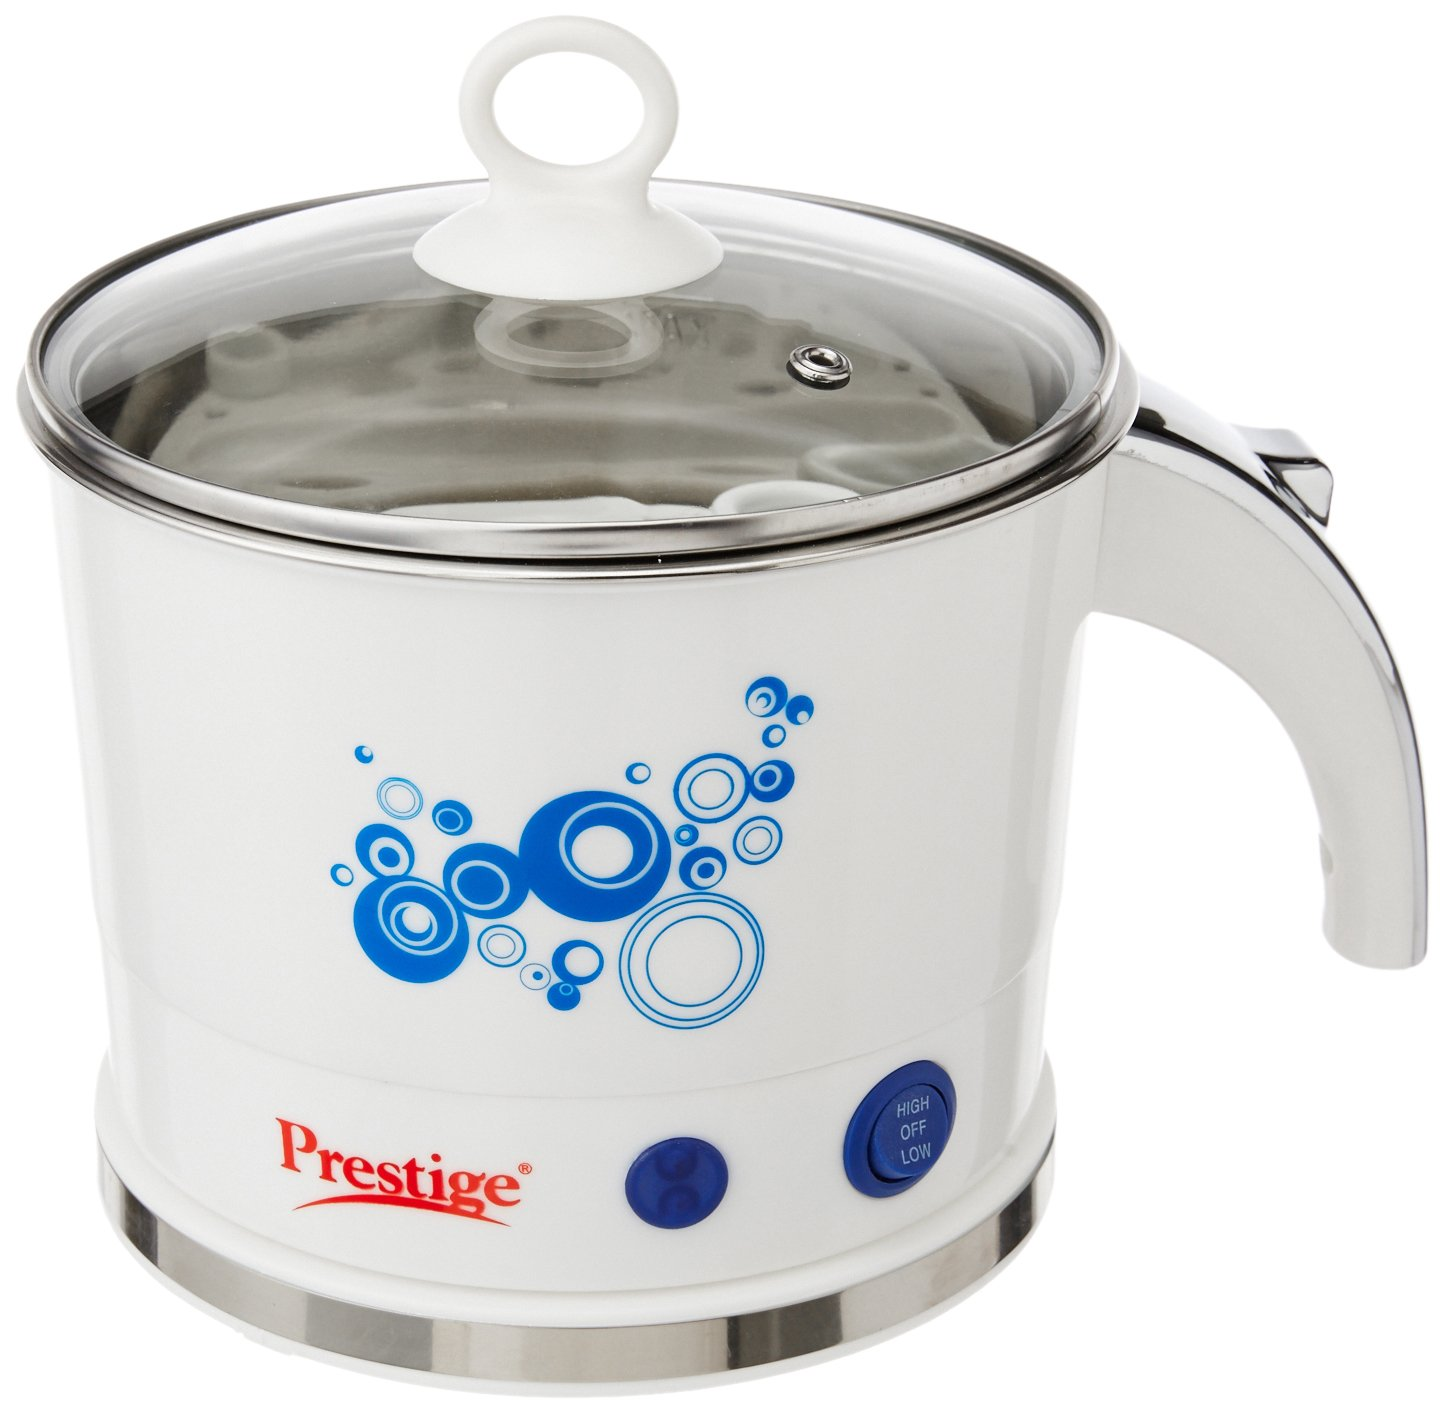 Prestige PMC 20 Multi Cooker with concealed base